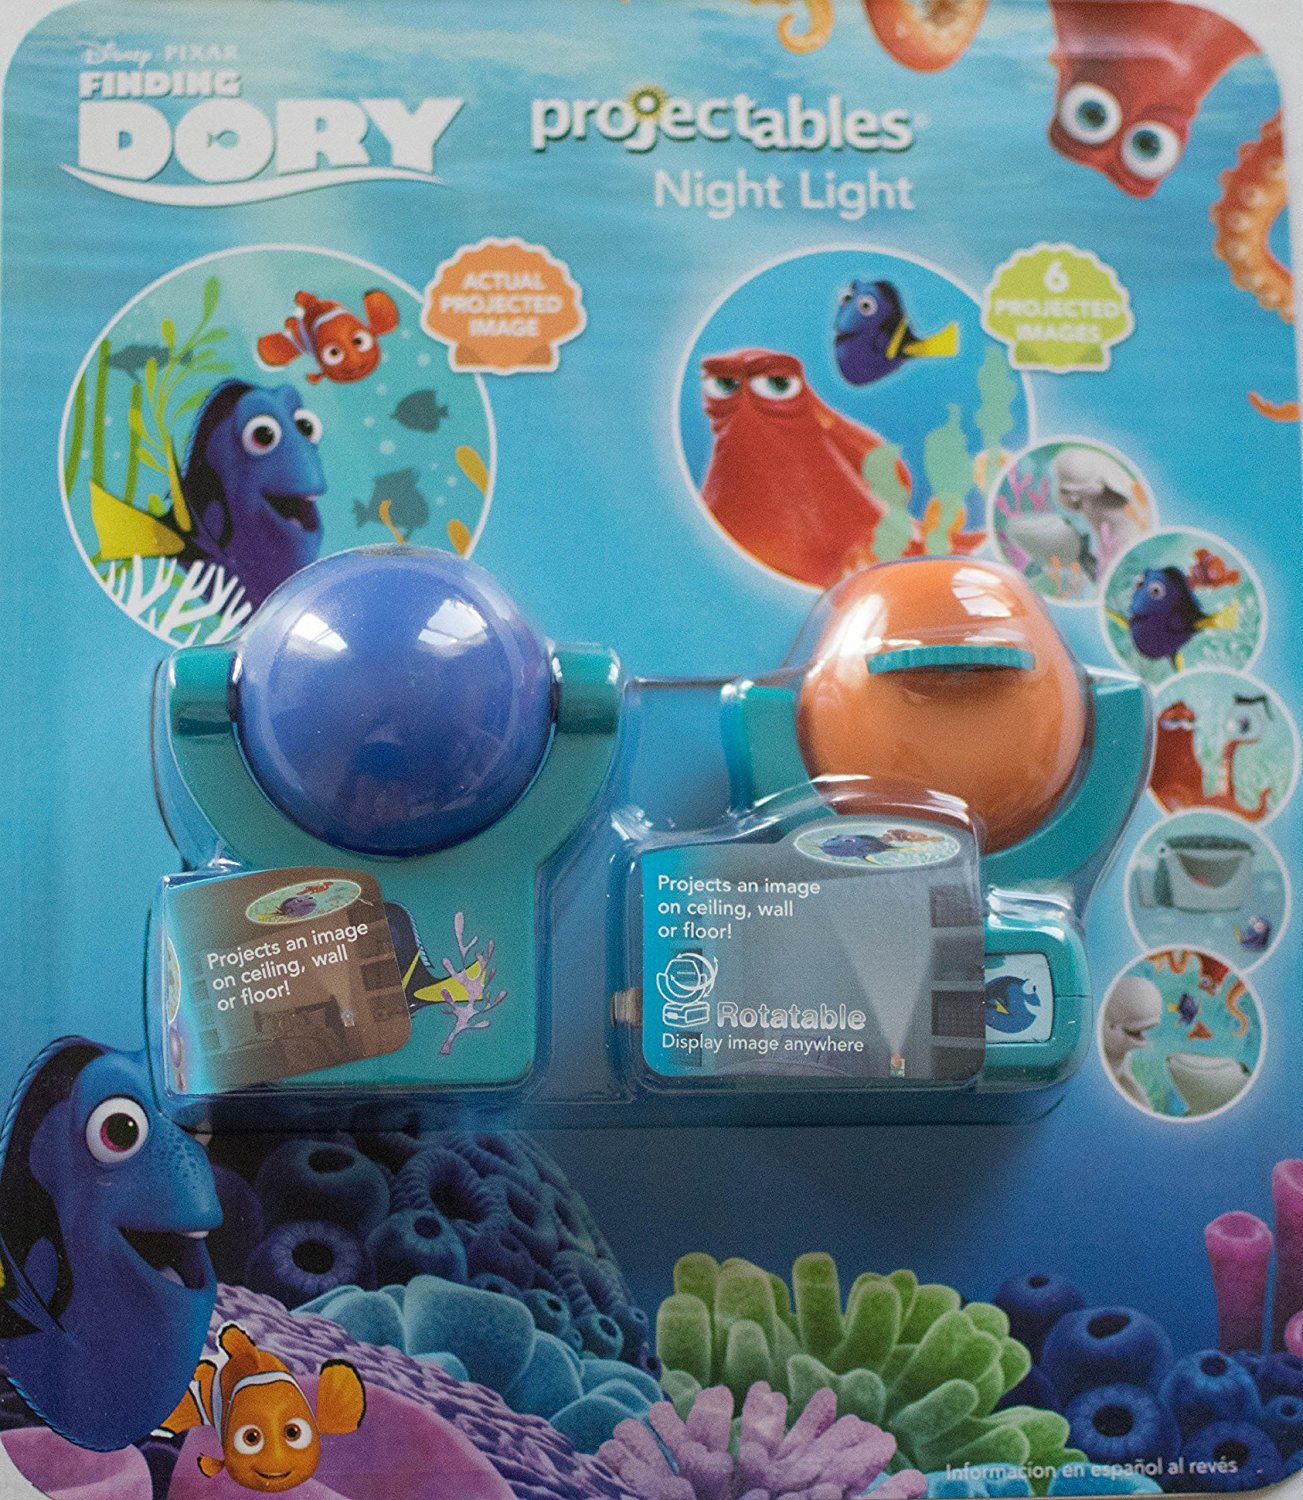 2 Pack Disney Finding Dory Projectables|Rotatable 6-Image Project LED Night Light and One Image LED Night Light, Plug-In, Light Sensing, Dusk-to-Dawn, Project Onto Wall or Ceiling - - AmazonSmile